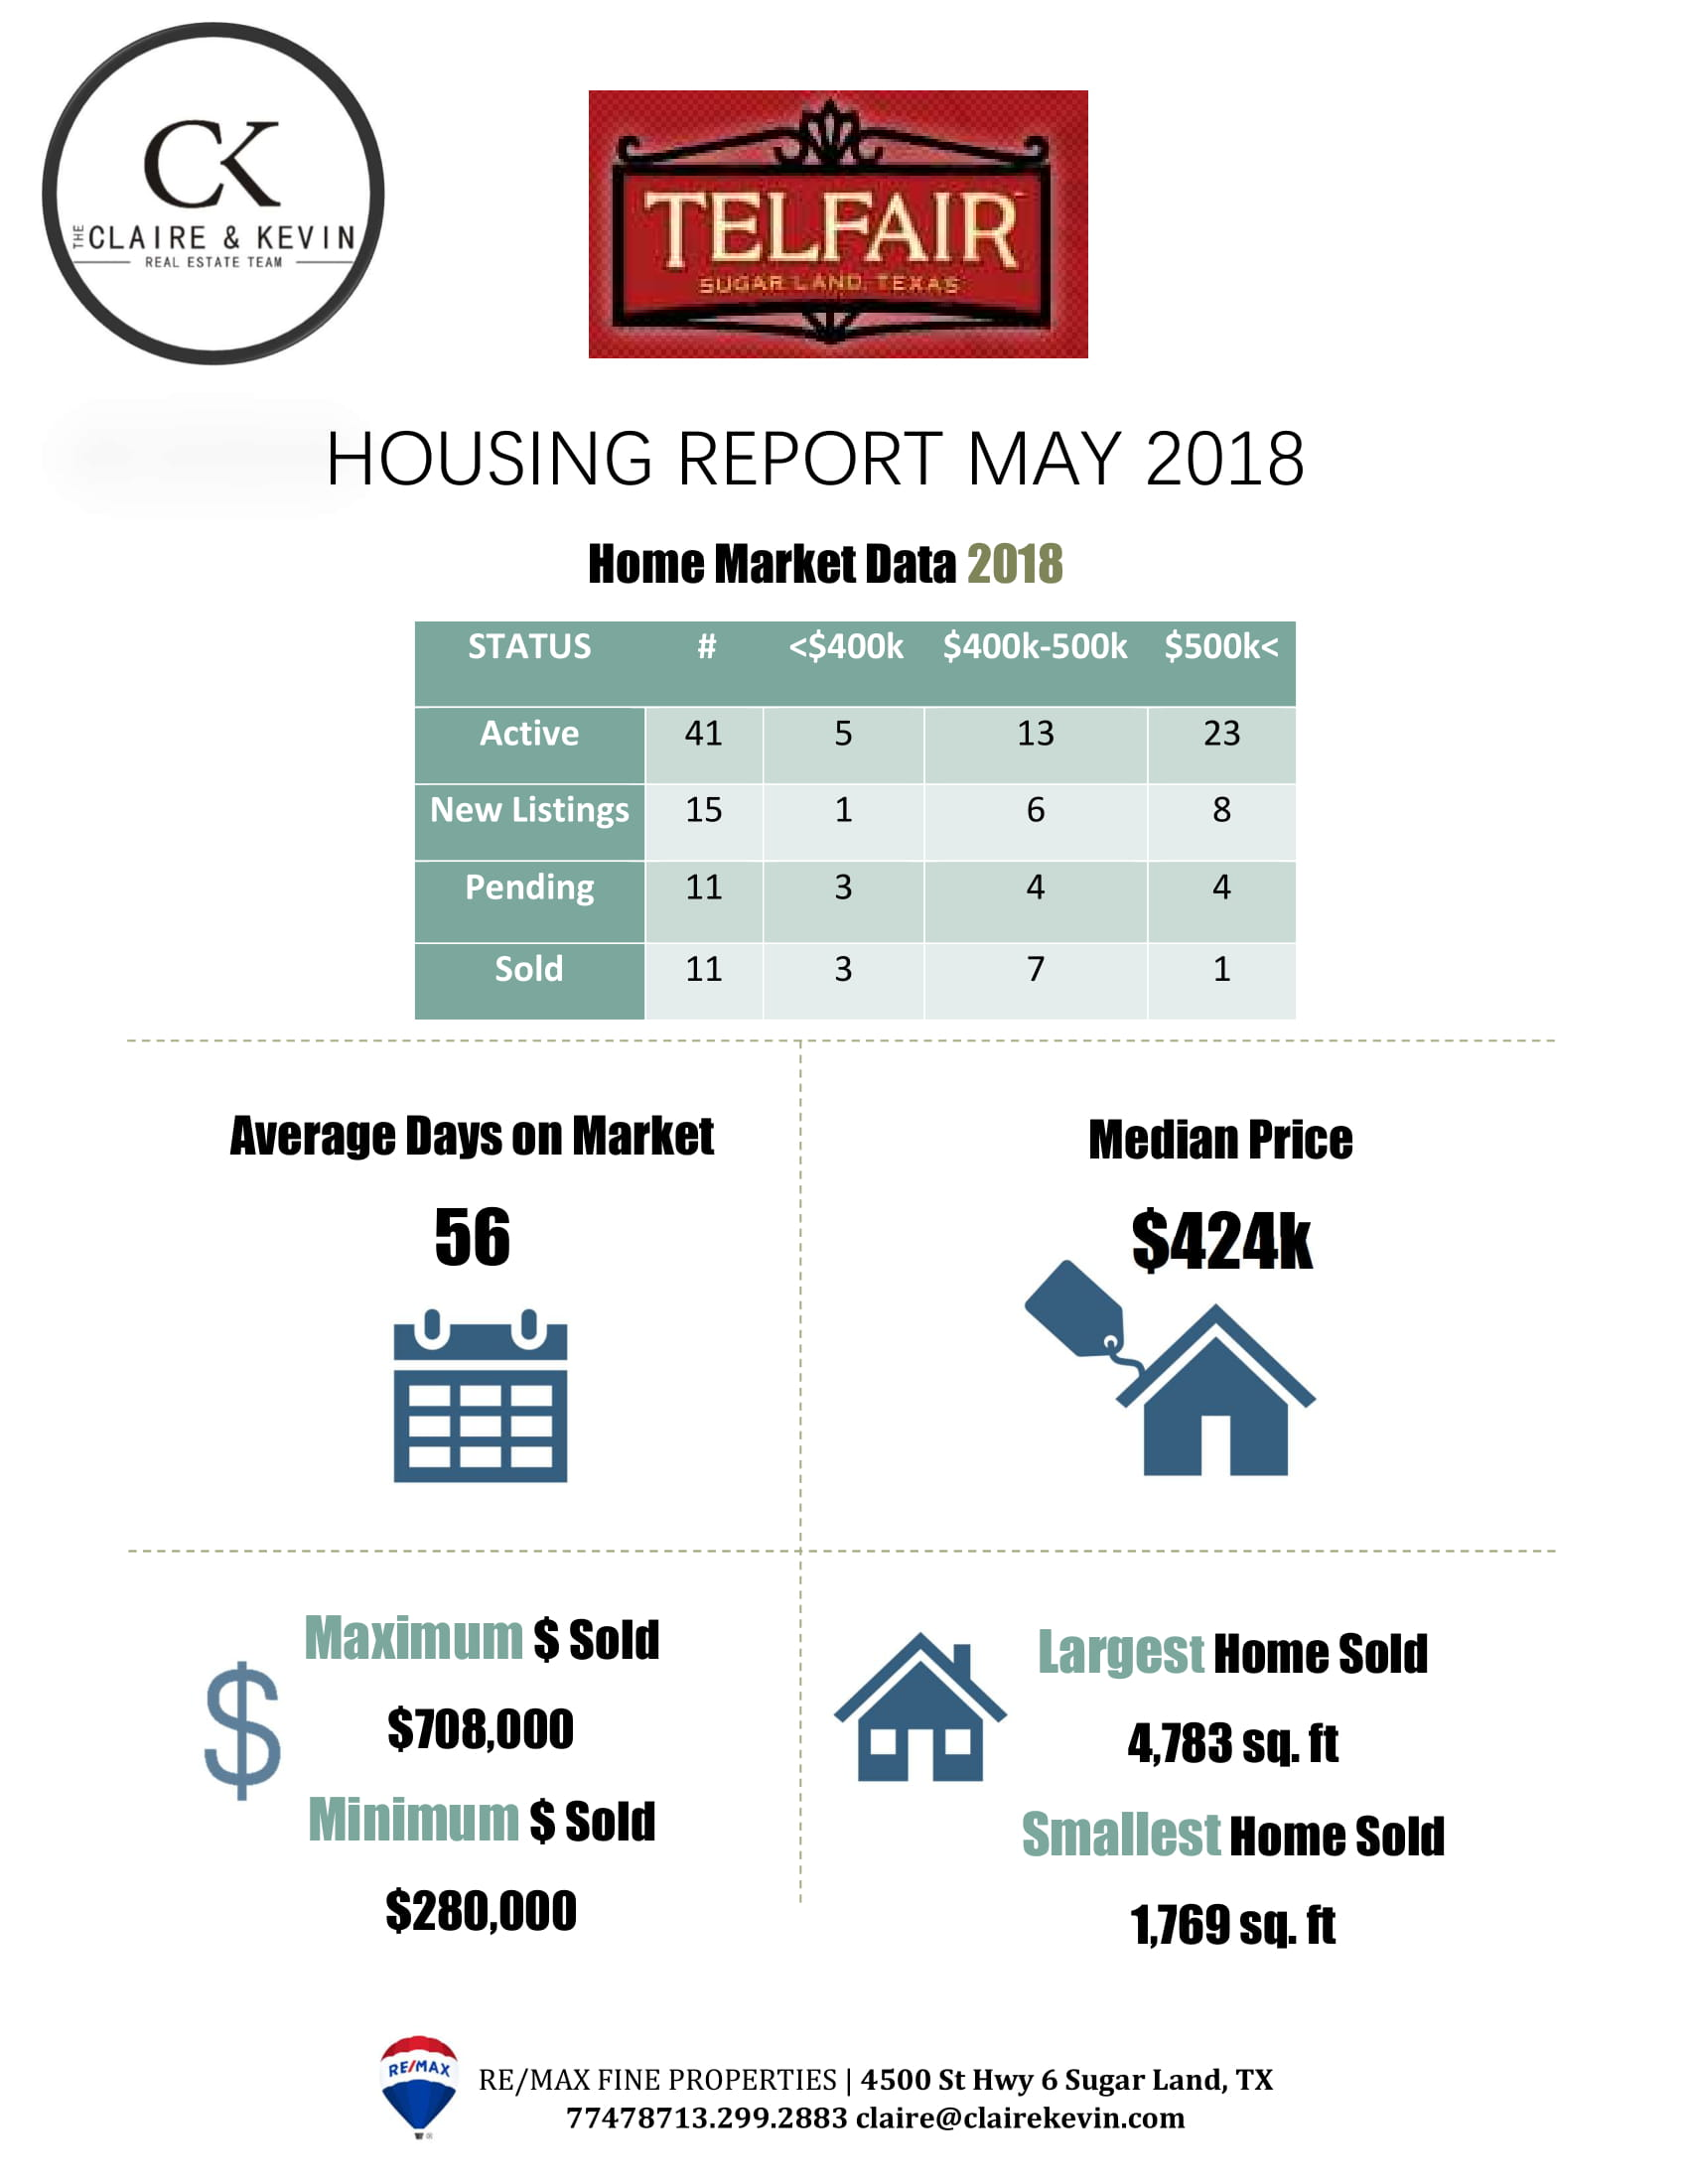 7922ff08ea Telfair Housing Report- May 2018 - Claire   Kevin Real Estate Team ...